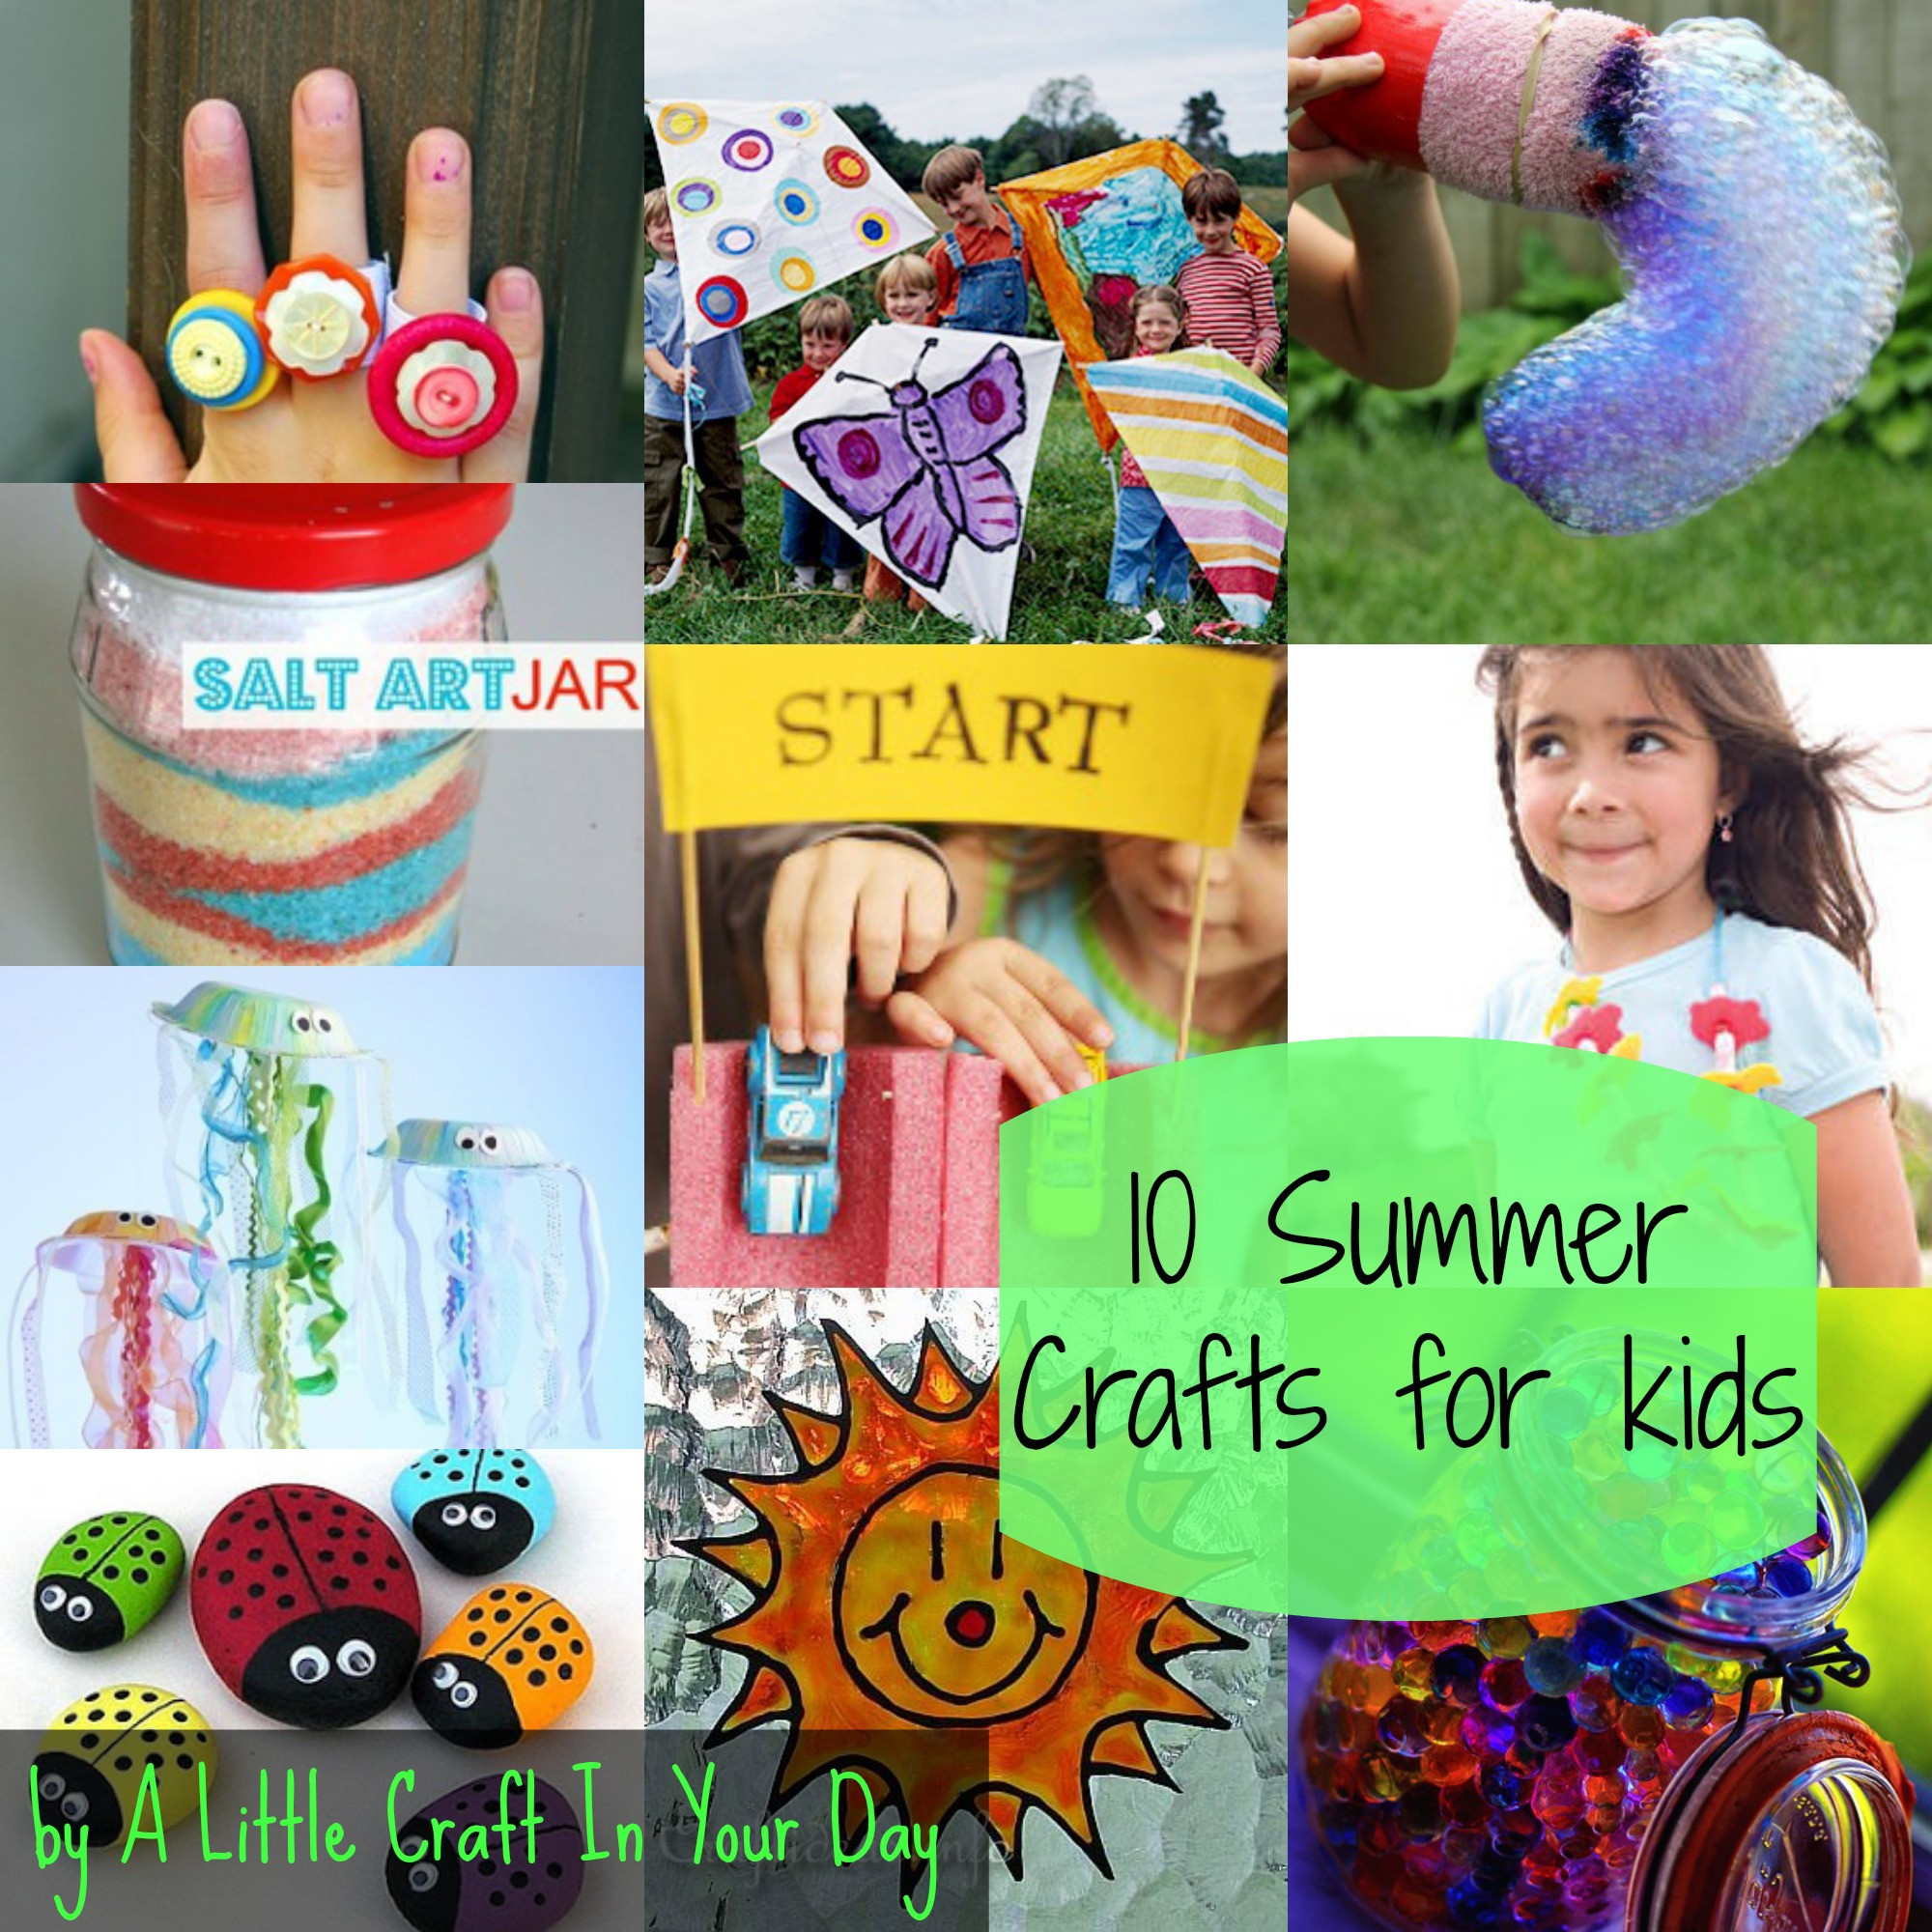 Crafts For Little Kids  20 Summer Kid Crafts A Little Craft In Your Day